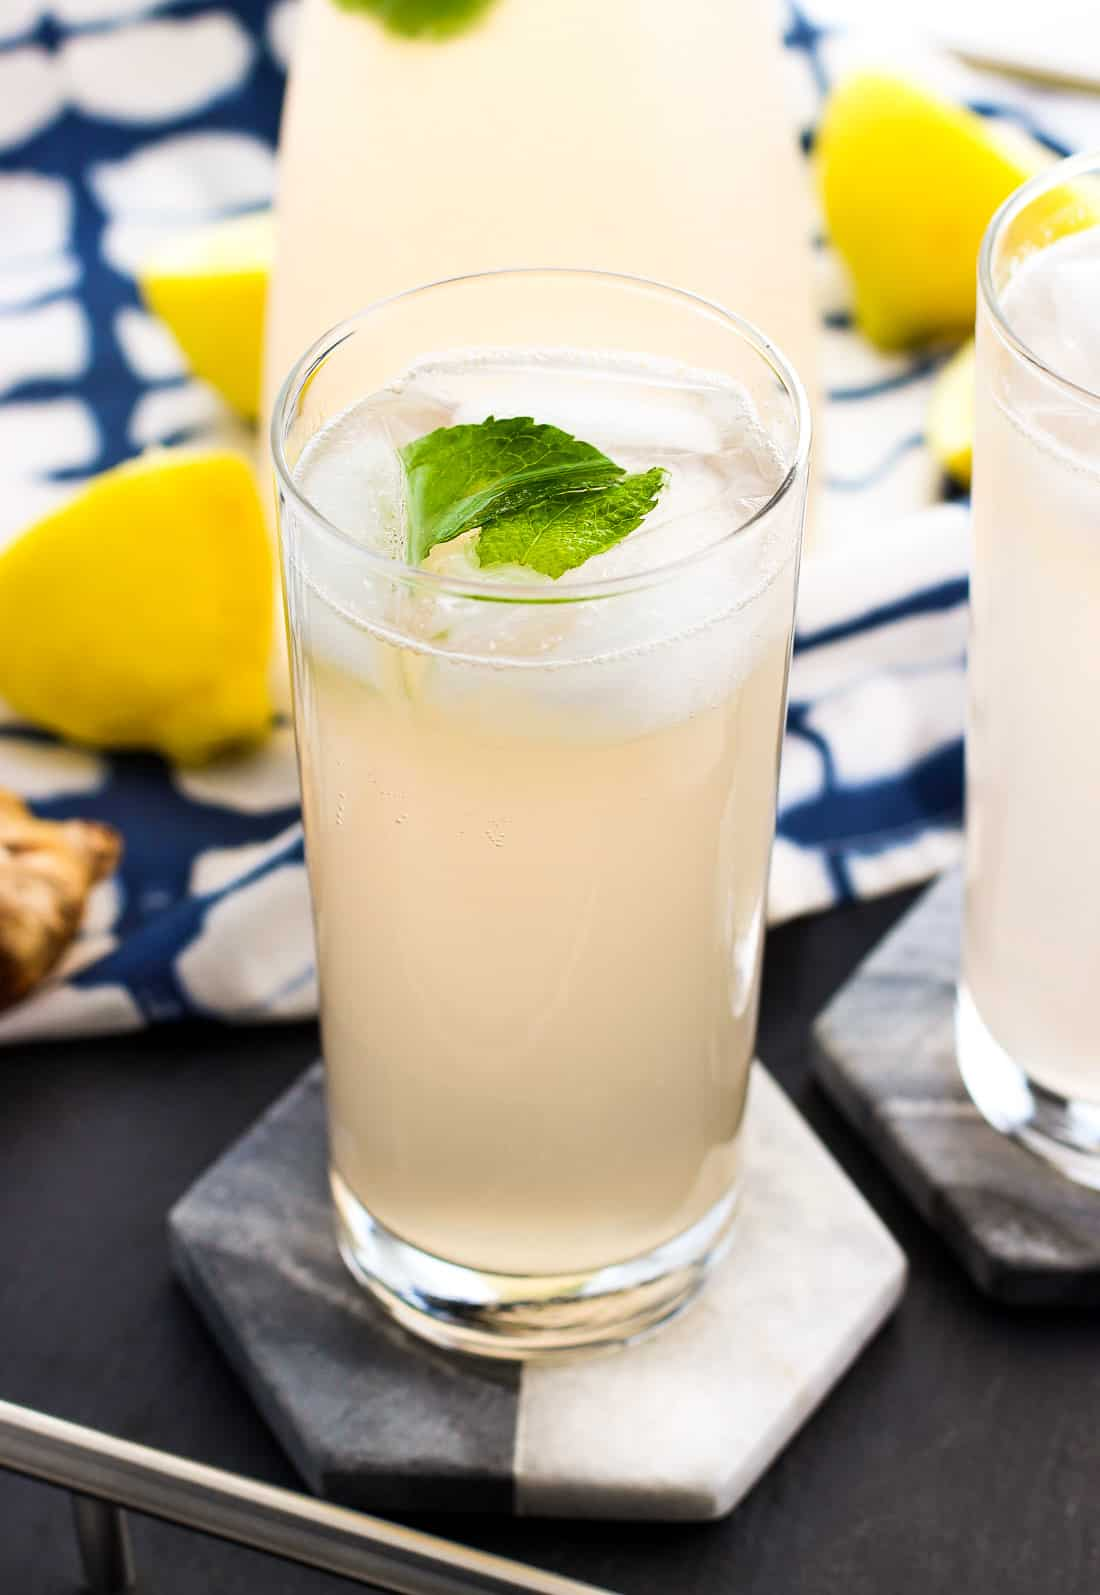 A tall glass of ginger lemonade on a marble coaster filled with ice and garnished with fresh mint leaves in front of lemons and a piece of ginger root